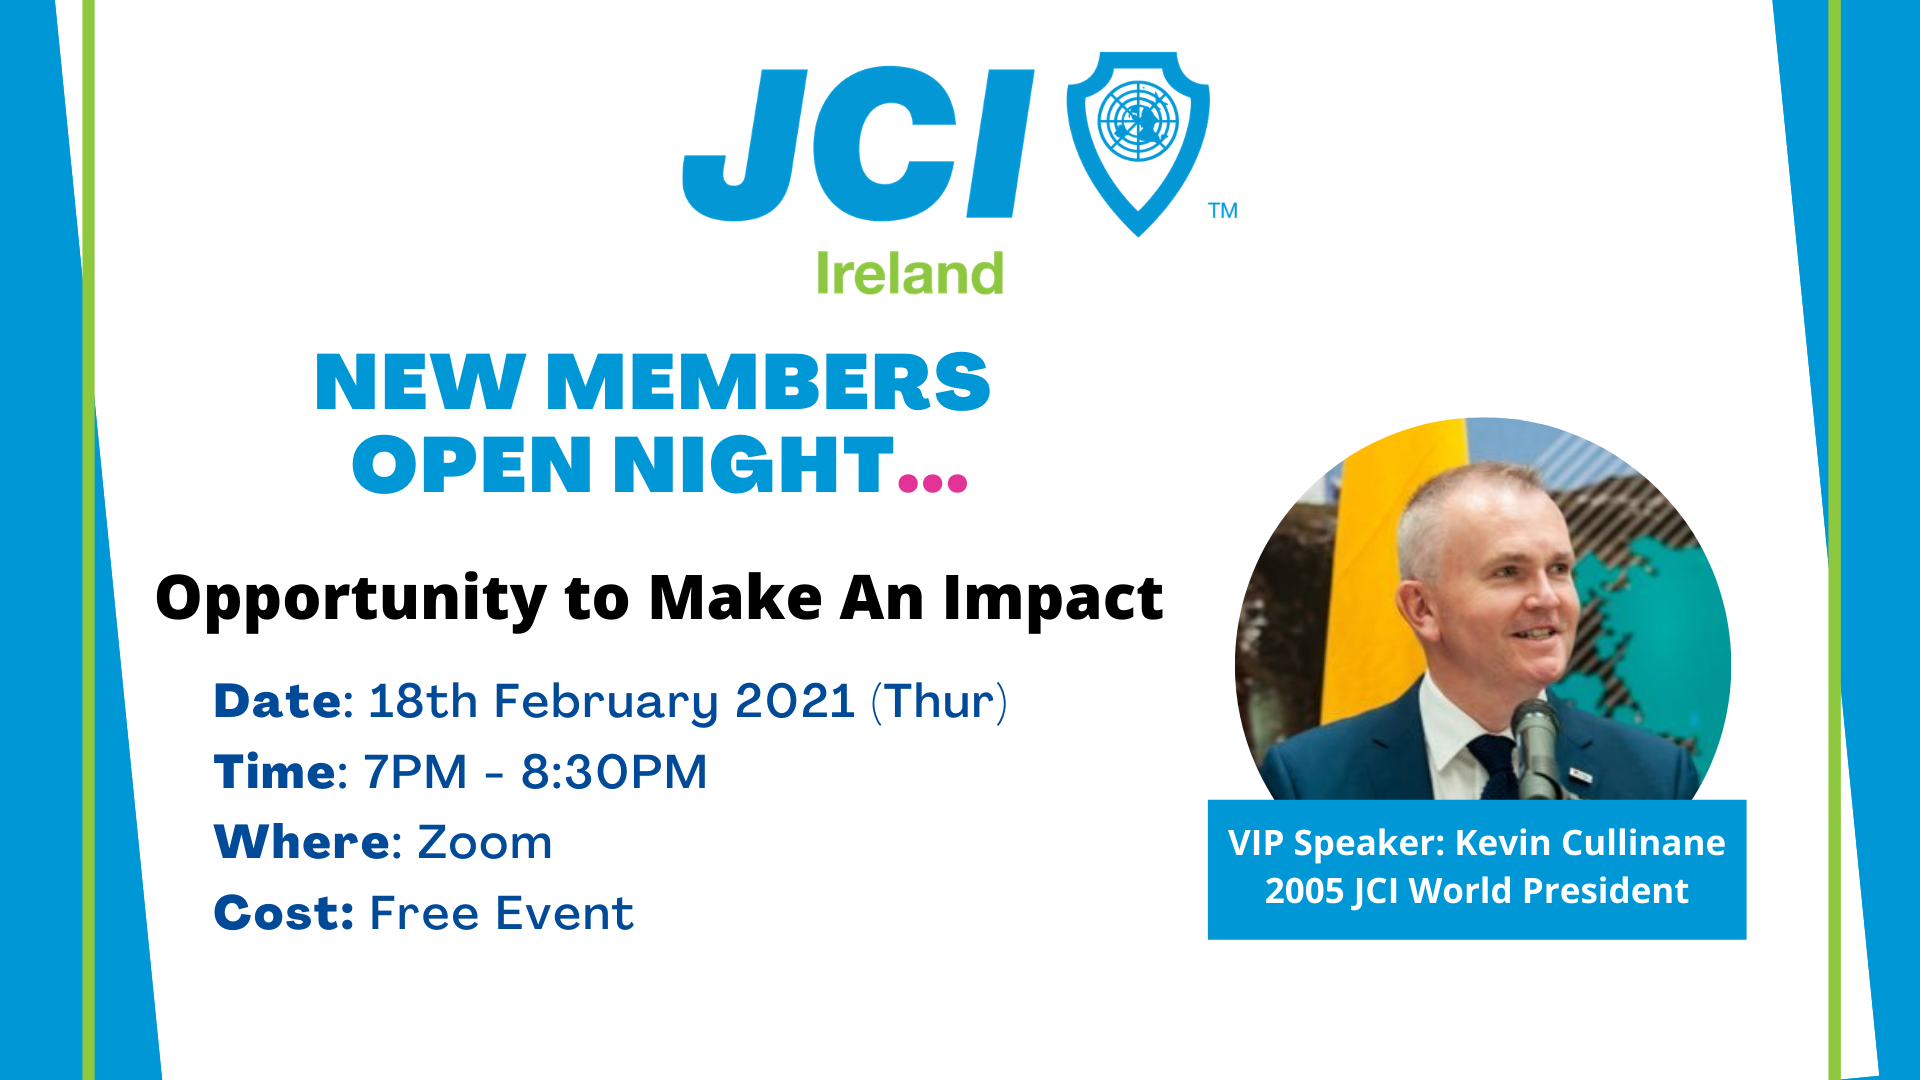 JCI Ireland New Members Open Night